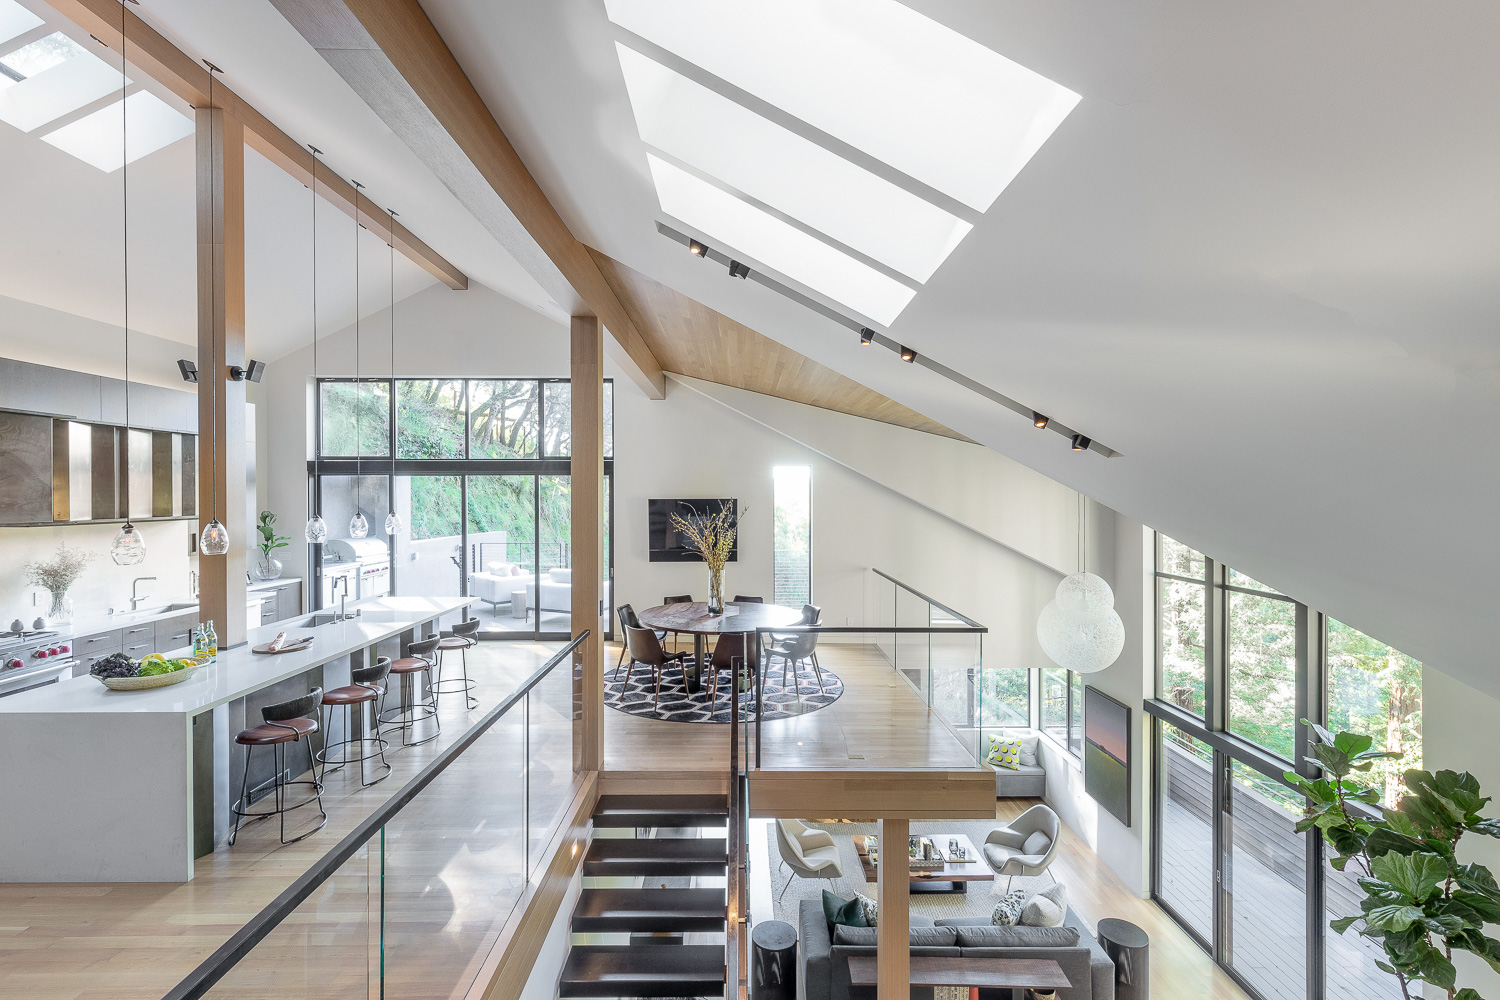 Sky lights usher in plenty of natural light, which filters through the open layout. Parlettepositioned outdoor rooms at either end of the space.